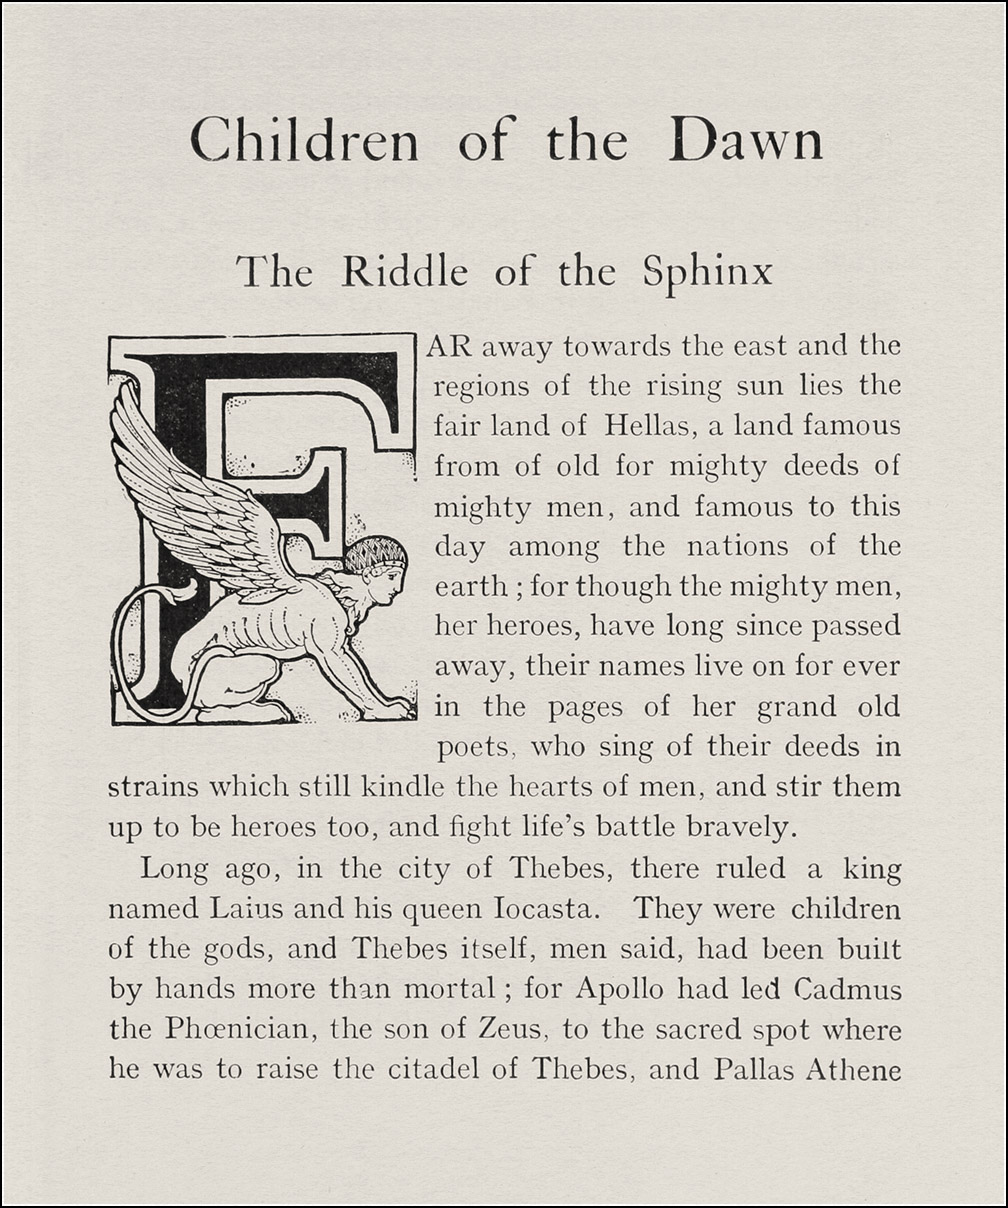 Frank C. Pape, Children of the dawn